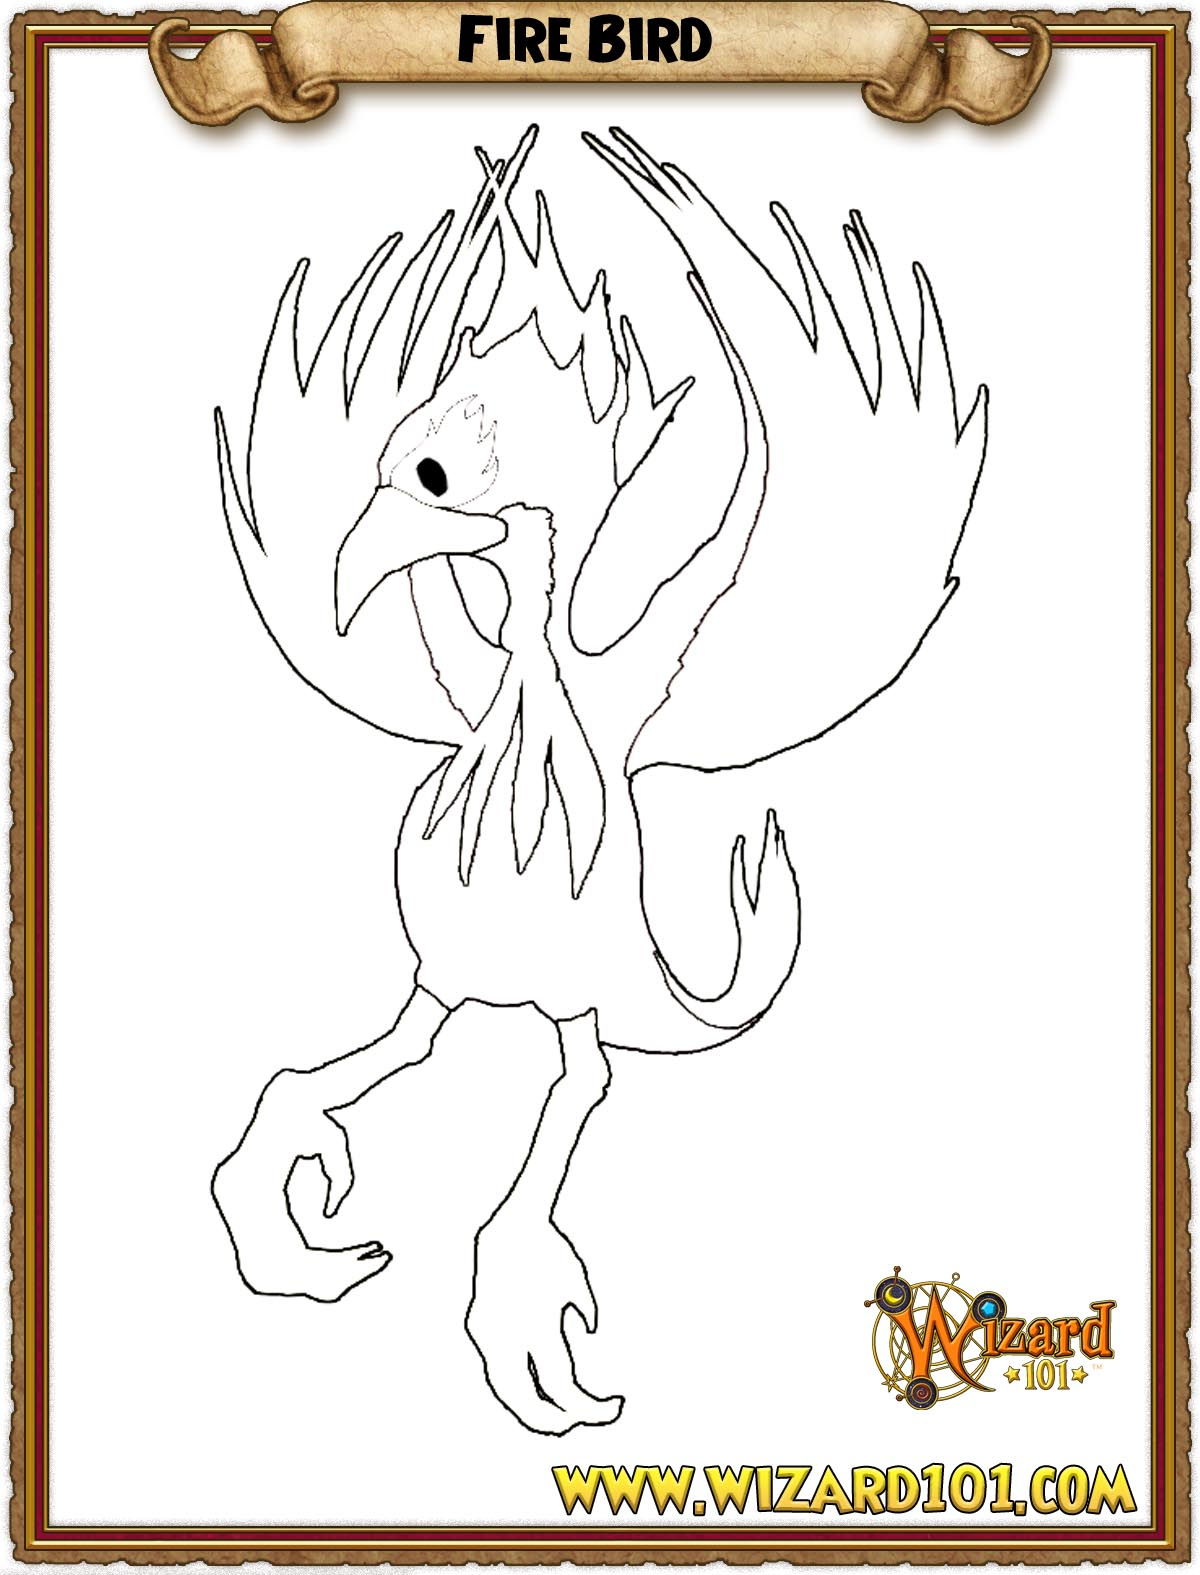 wizard101 printable coloring pages - photo#20